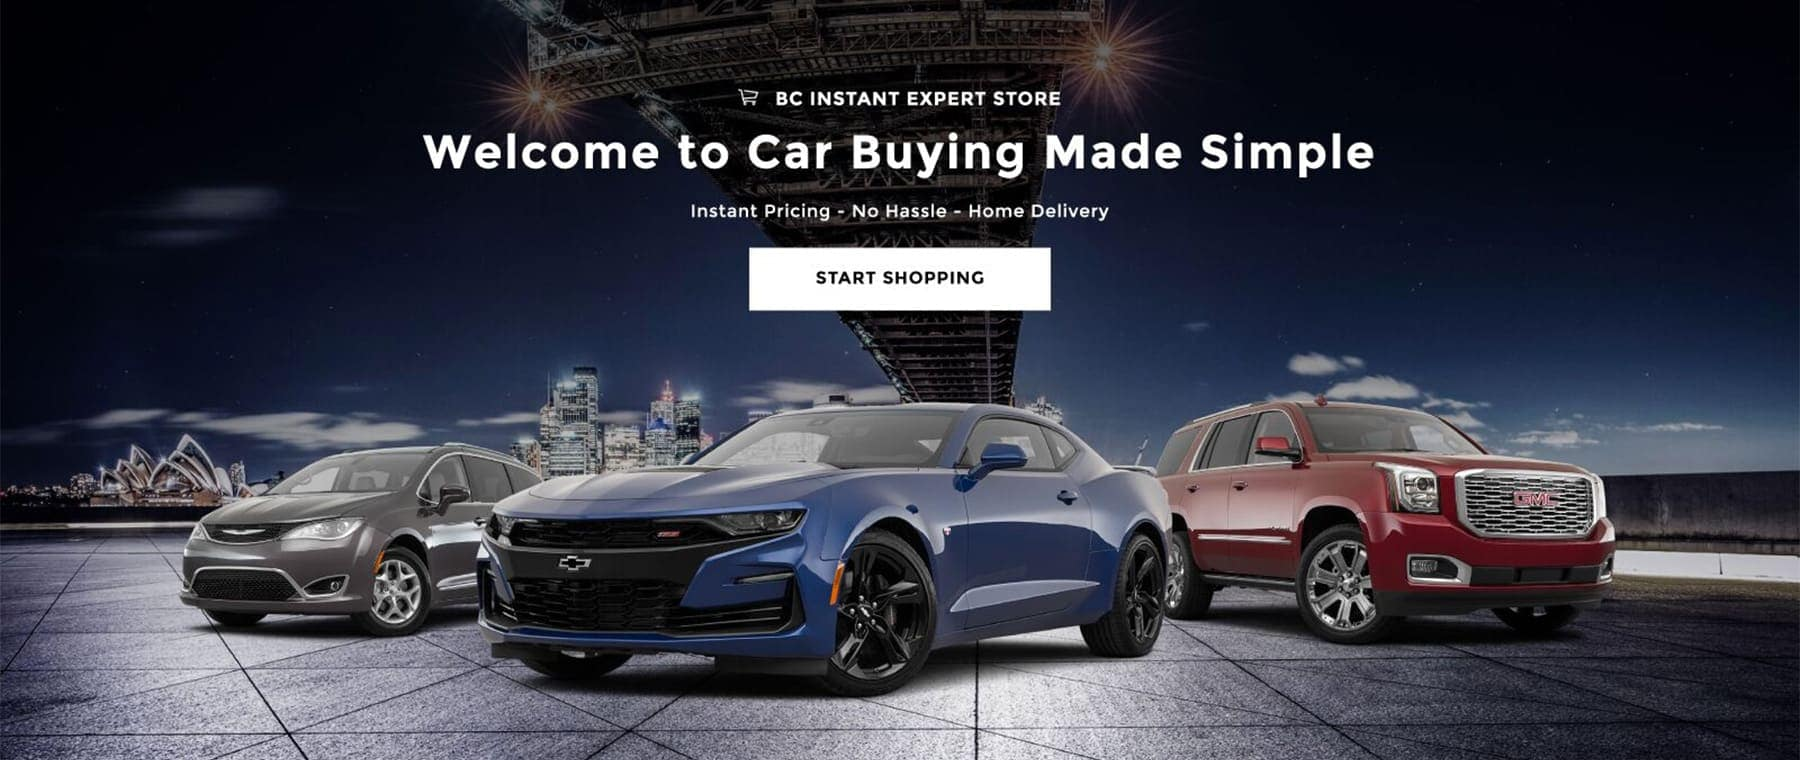 Welcome to Car Buying Made Simple. Start Shopping.